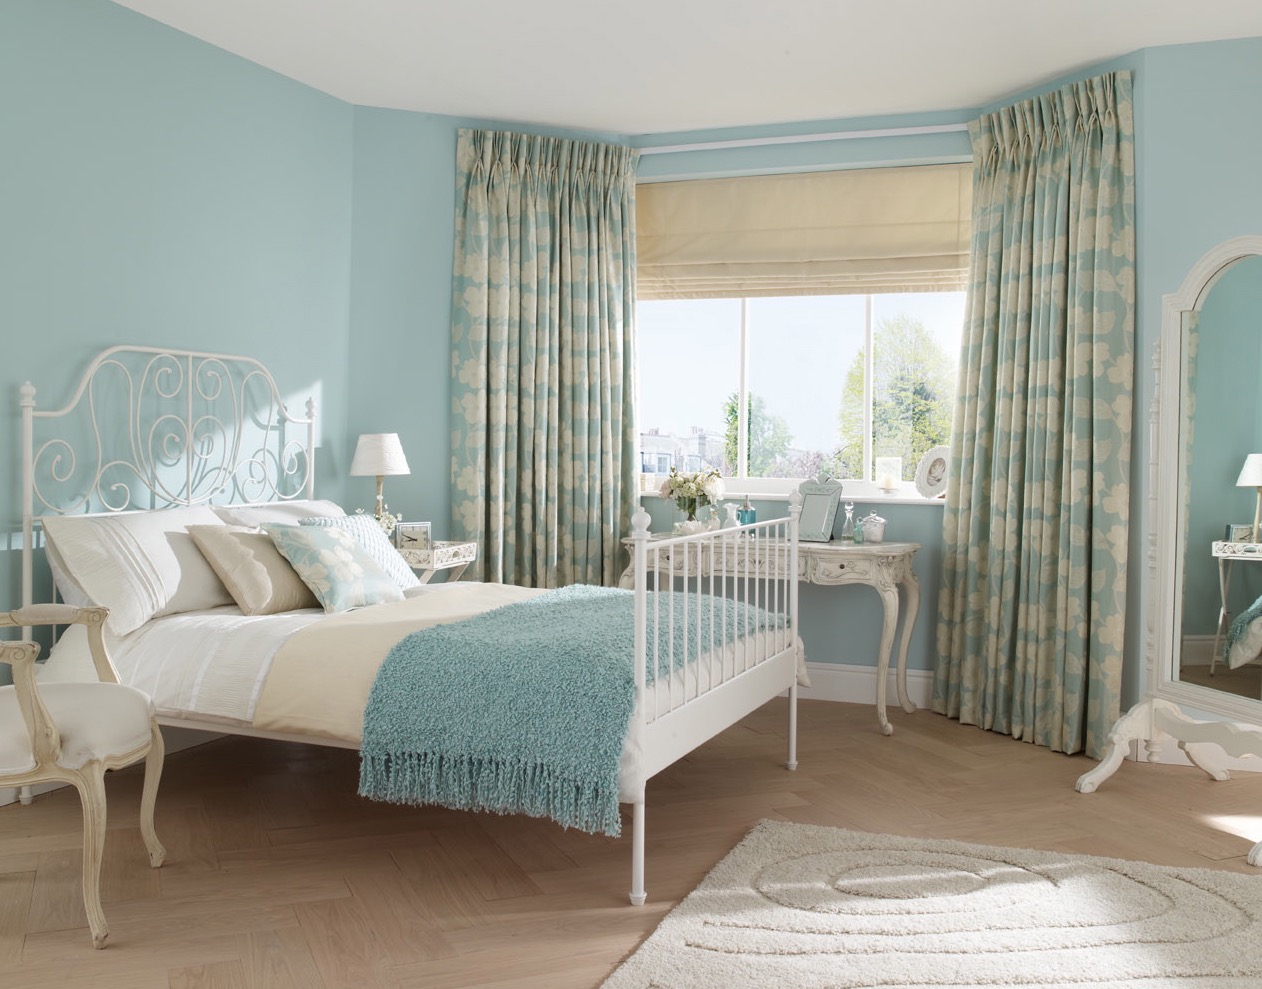 Traditional Bedroom With Double Sheer Curtains (View 12 of 12)